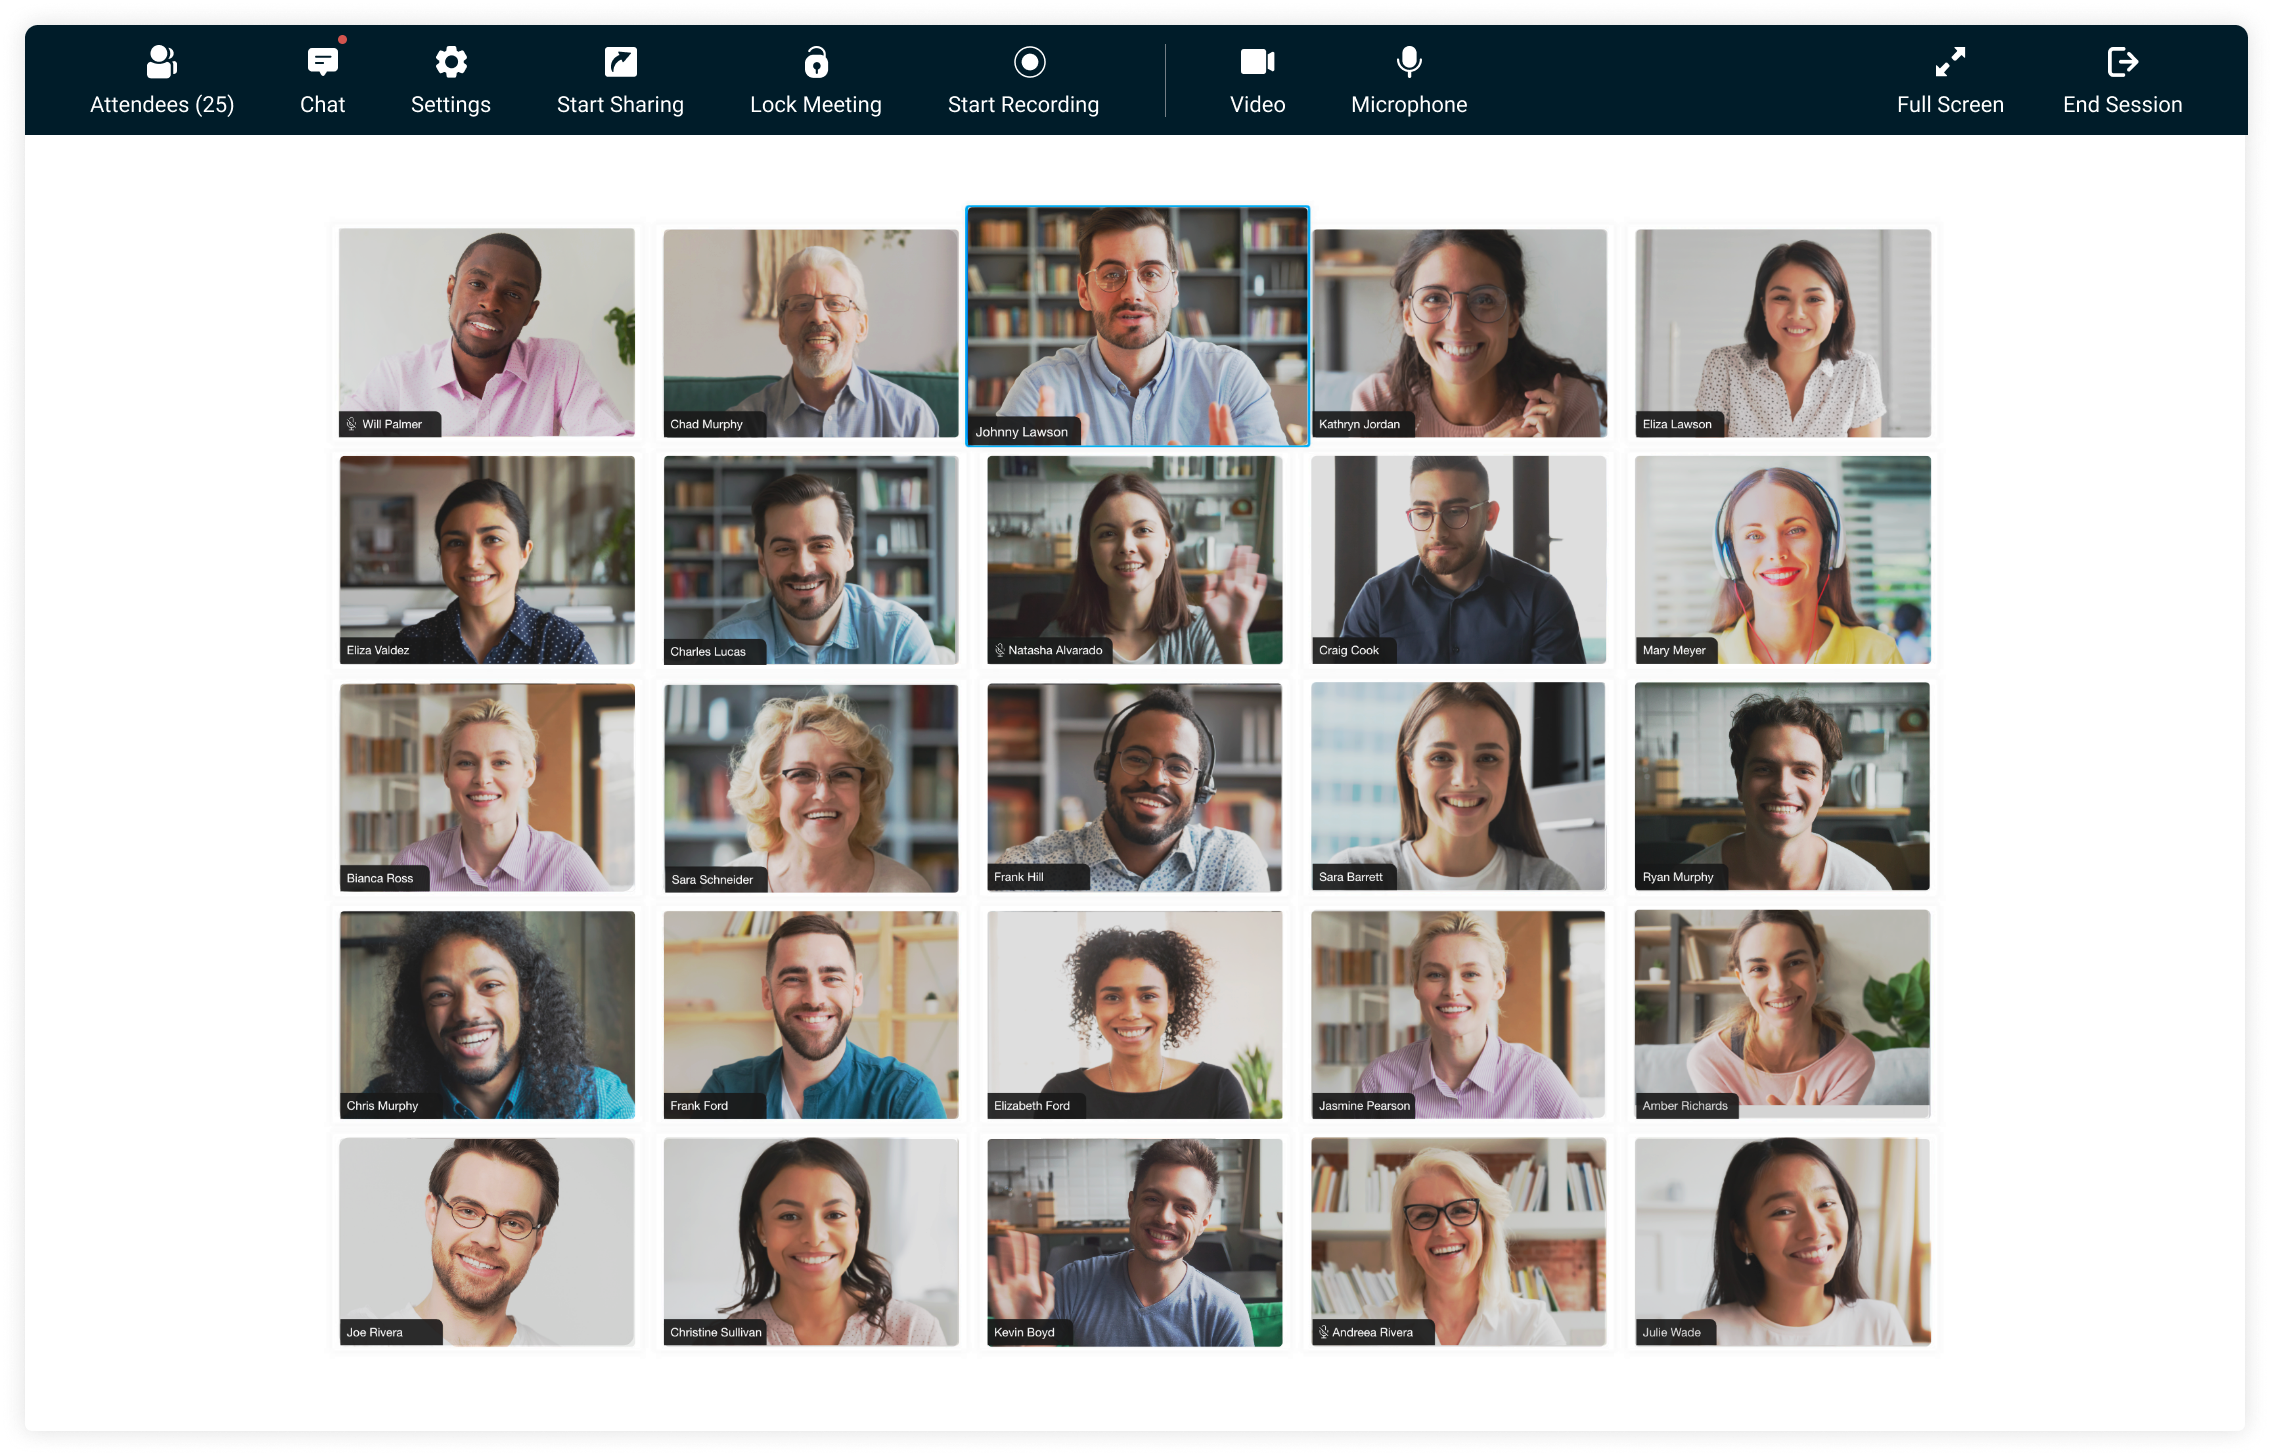 Zoho Meeting introduces video conferencing with multiple video feeds